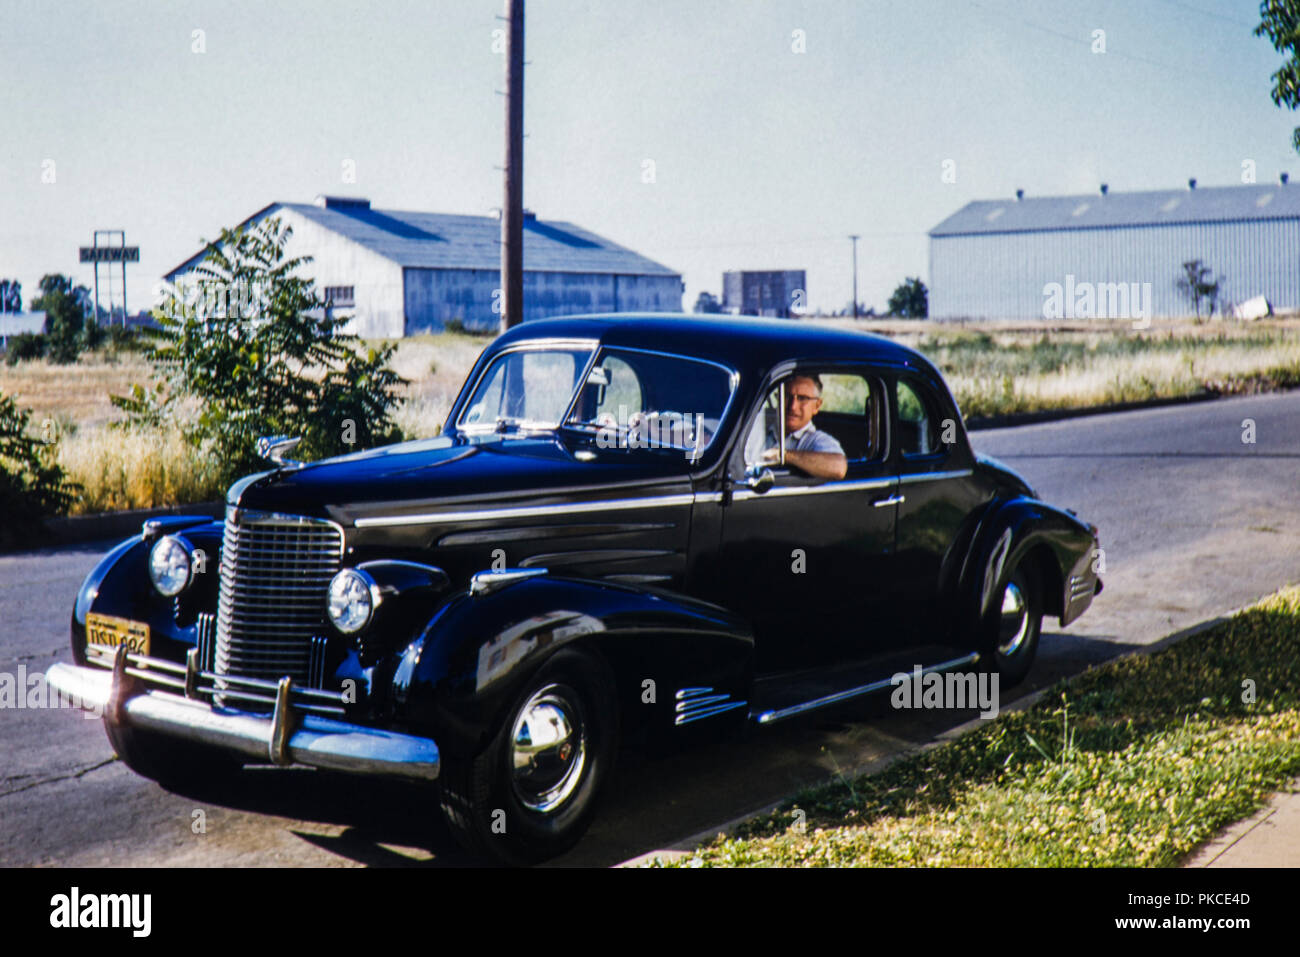 Black and chrome old 2 door Cadillac Sedan American car with a 1956